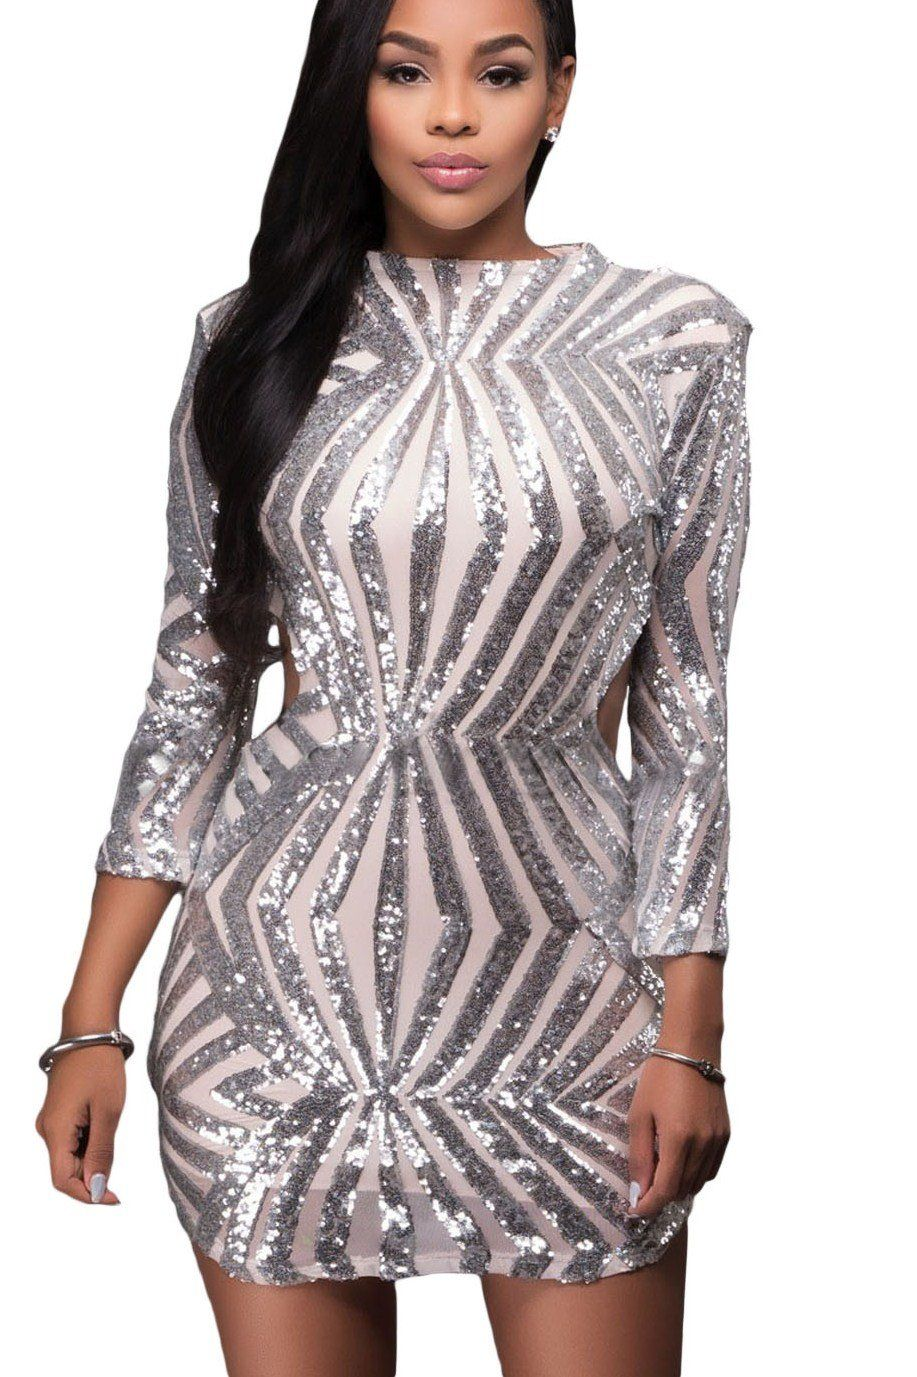 Robe de Soiree Courte Paillettes Argent Dos Nu Manches Longues Pas Cher  www.modebuy.com @Modebuy Modebuy Argent mode streetstyle newstyle  homecoming